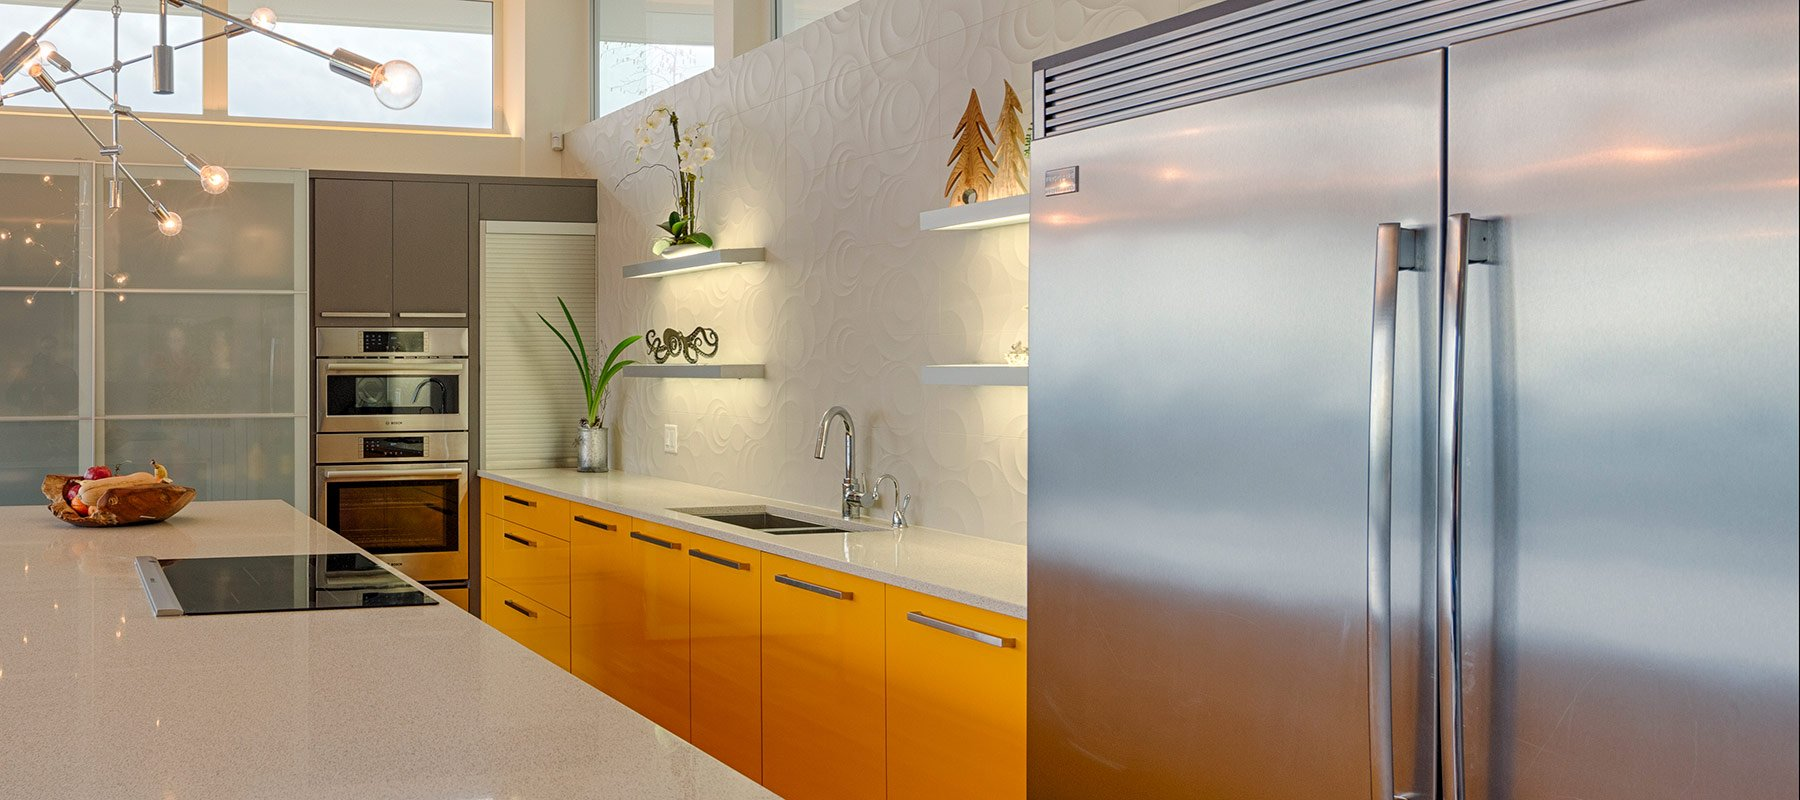 Custom Kitchen with Yellow Cabinetry and Dimensional Tile Backsplash